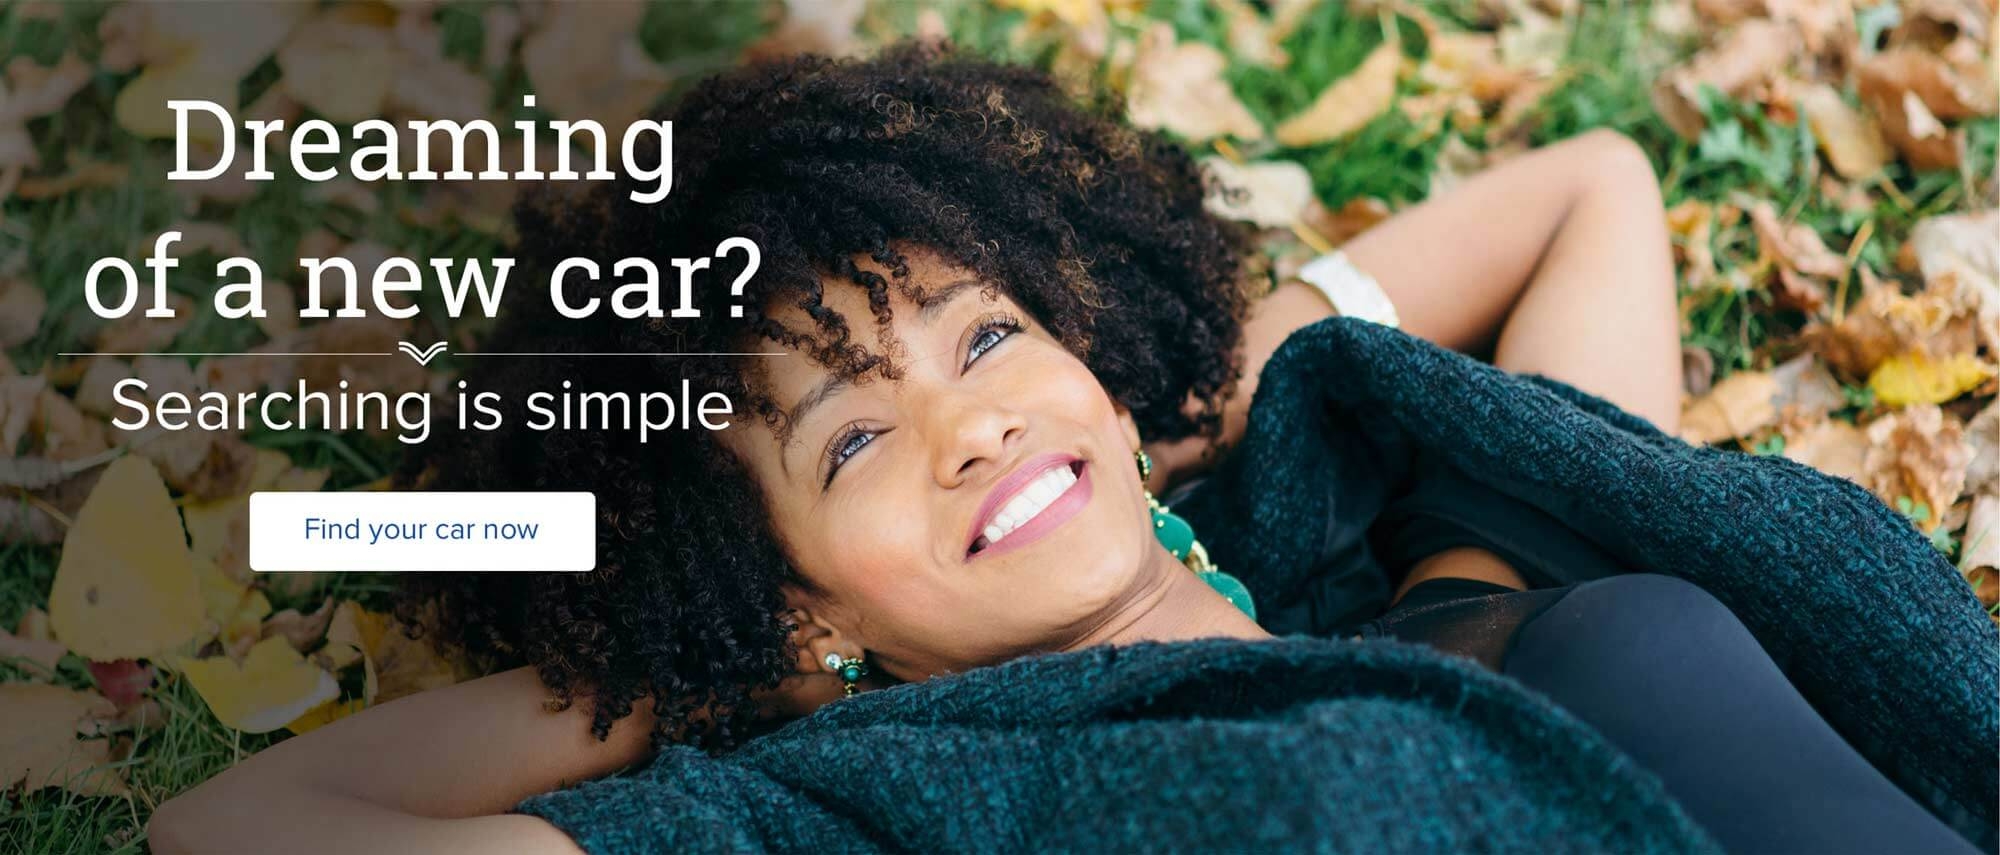 Dreaming of a new car? Searching is simple. Find your car now.